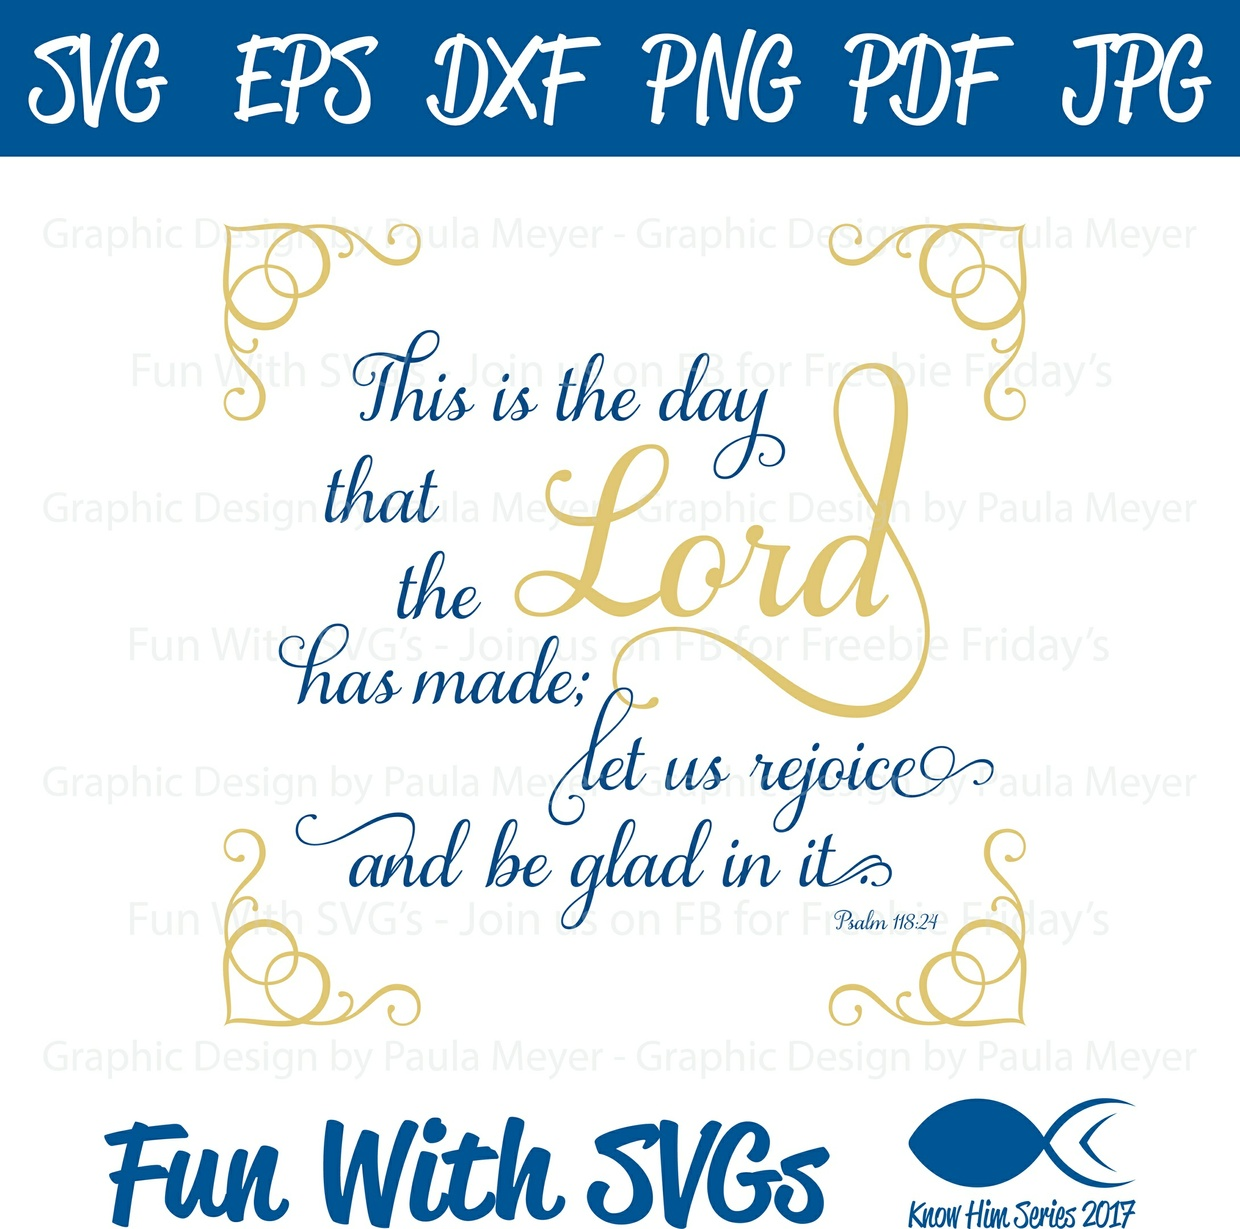 This is the Day the Lord Has Made - SVG Cut File, Printable Graphics and Editable Vector Art